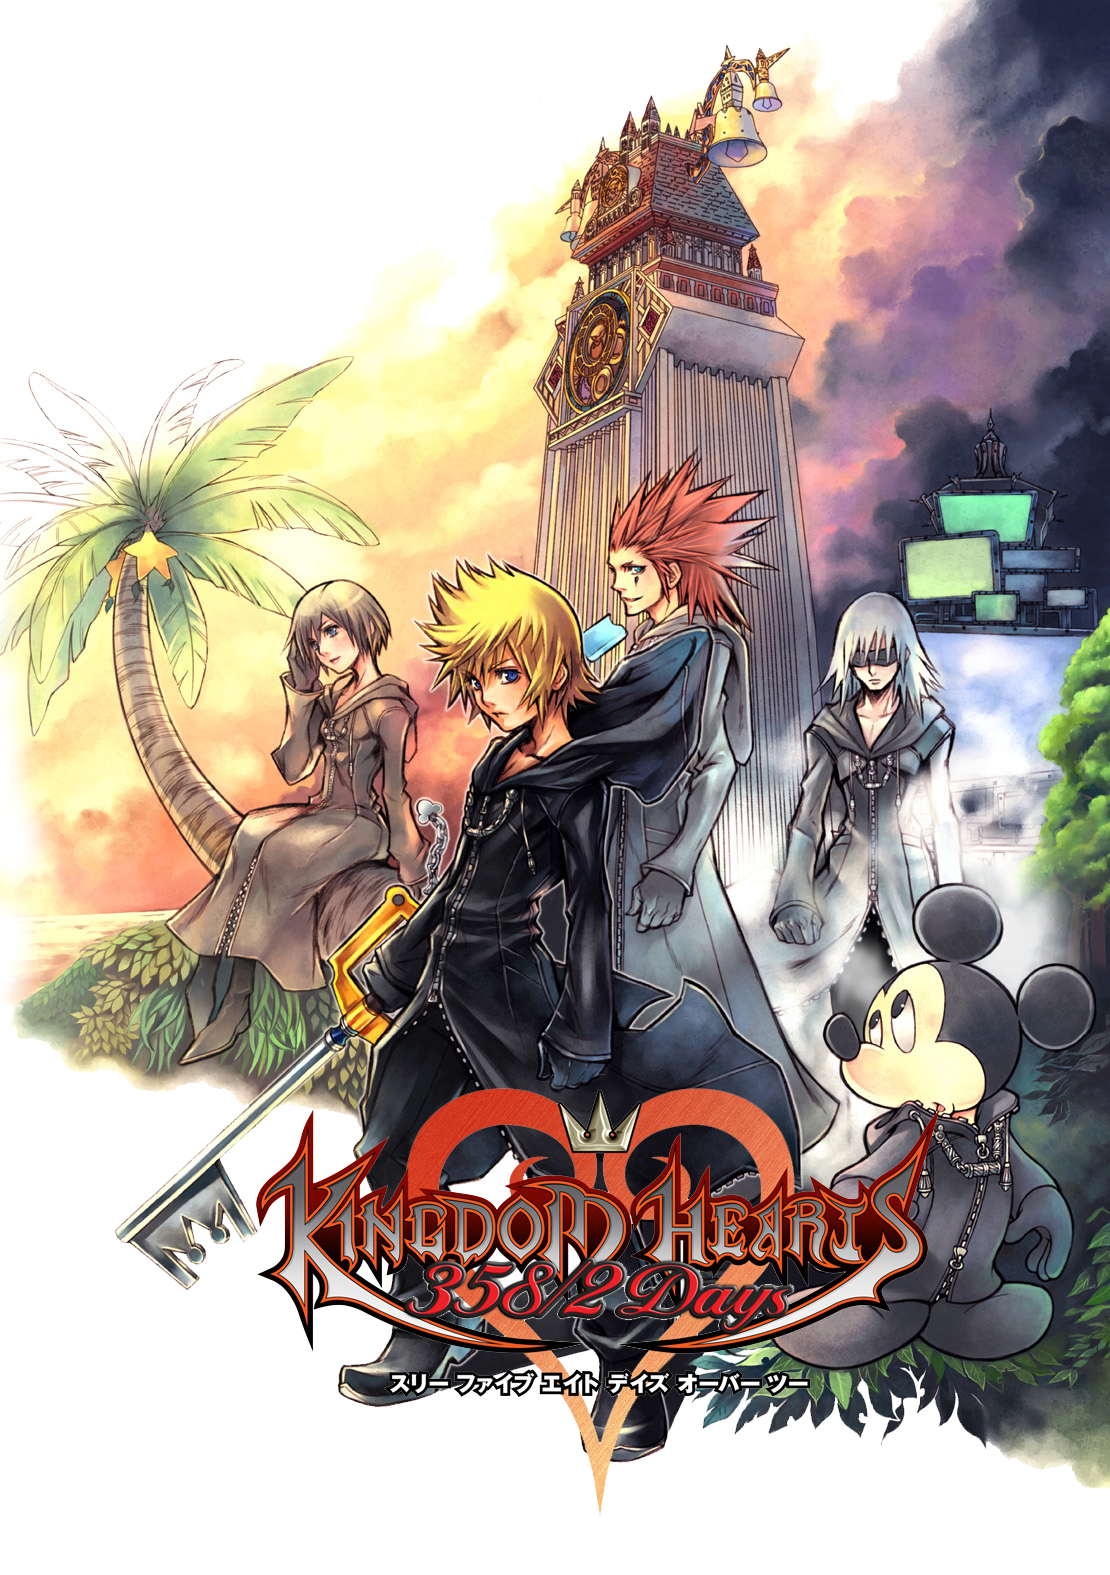 Qu'est ce qu'un bon titlescreen ? Kingdom_Hearts_358_2_days_by_CoolPsTuts